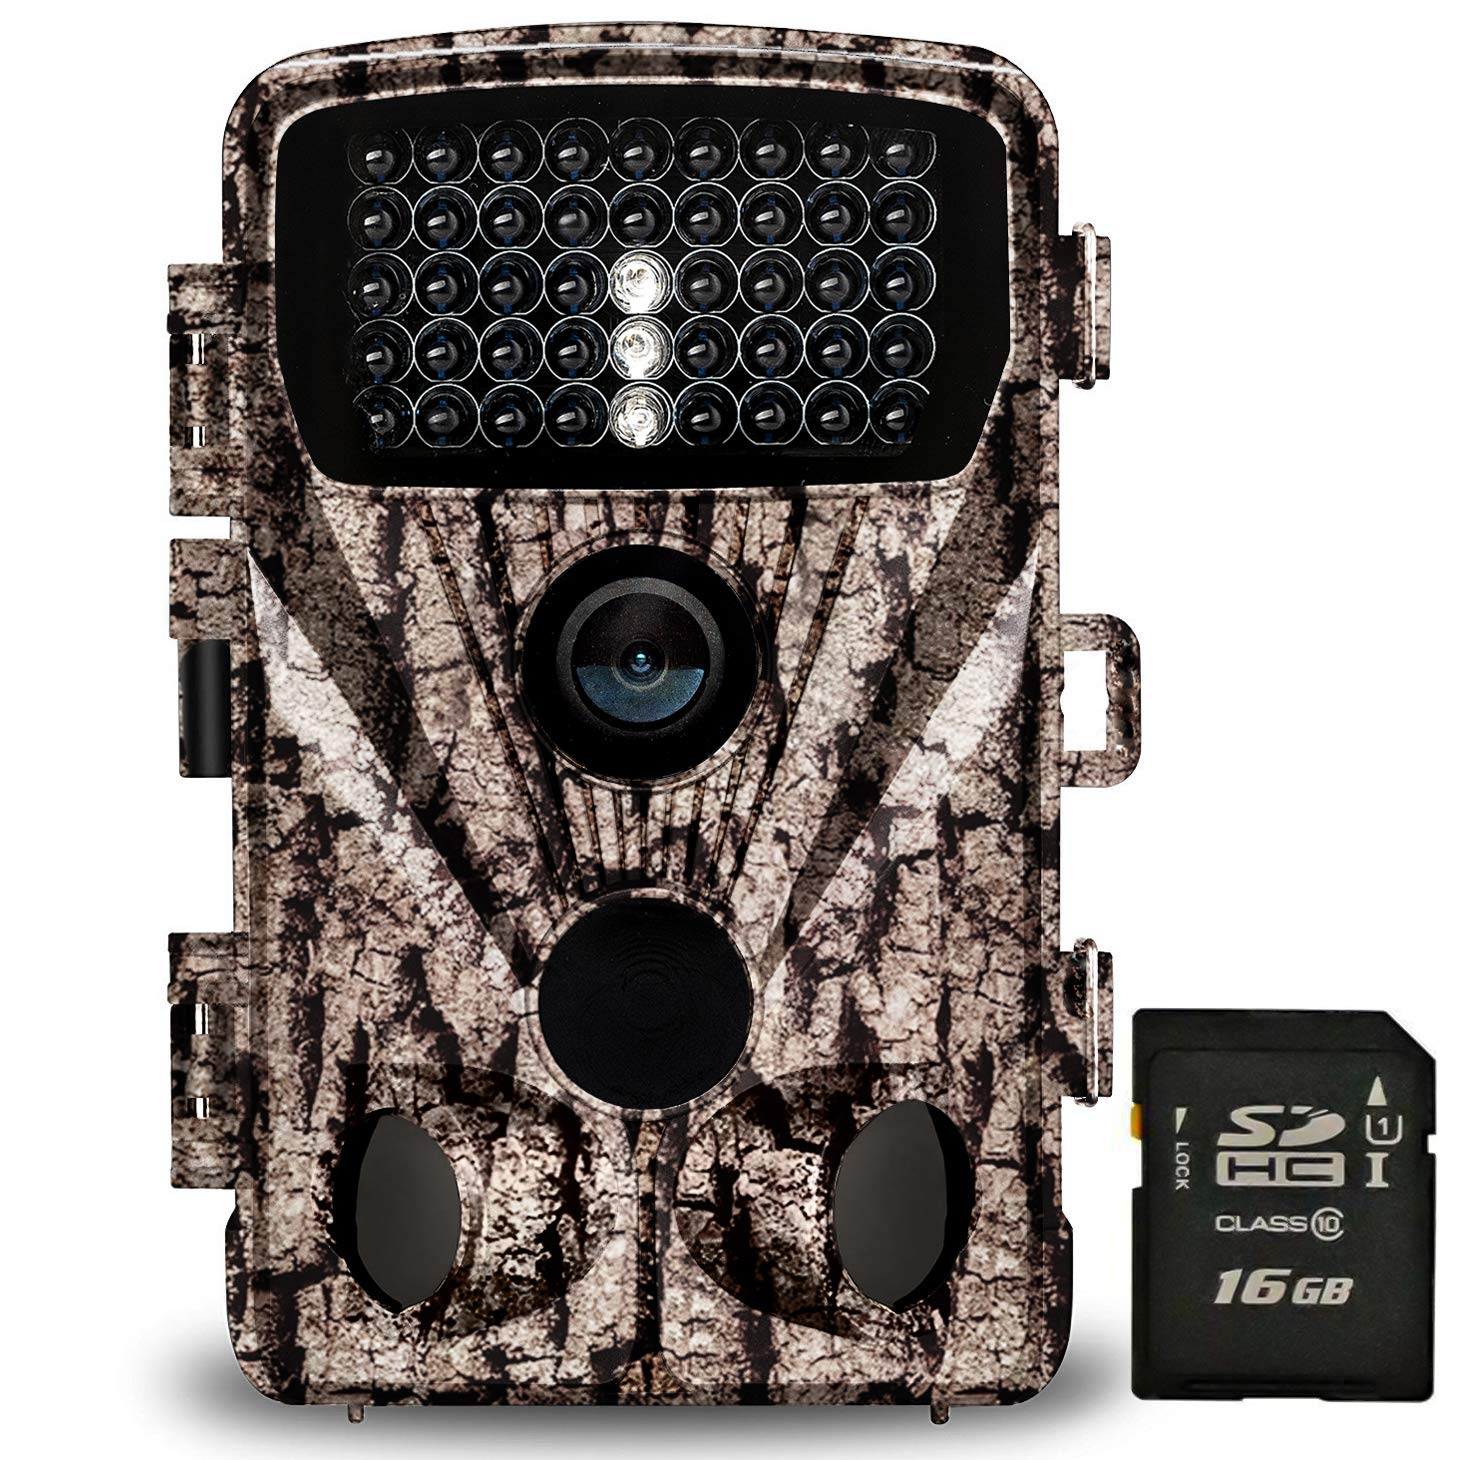 Foxelli Trail Camera - 20MP 1080P HD Wildlife Scouting Hunting Camera with Motion Activated Night Vision, 120° Wide Angle Lens, 42 IR LEDs & 2.4'' LCD screen, IP66 Waterproof Game Camera, SD card incl. by Foxelli